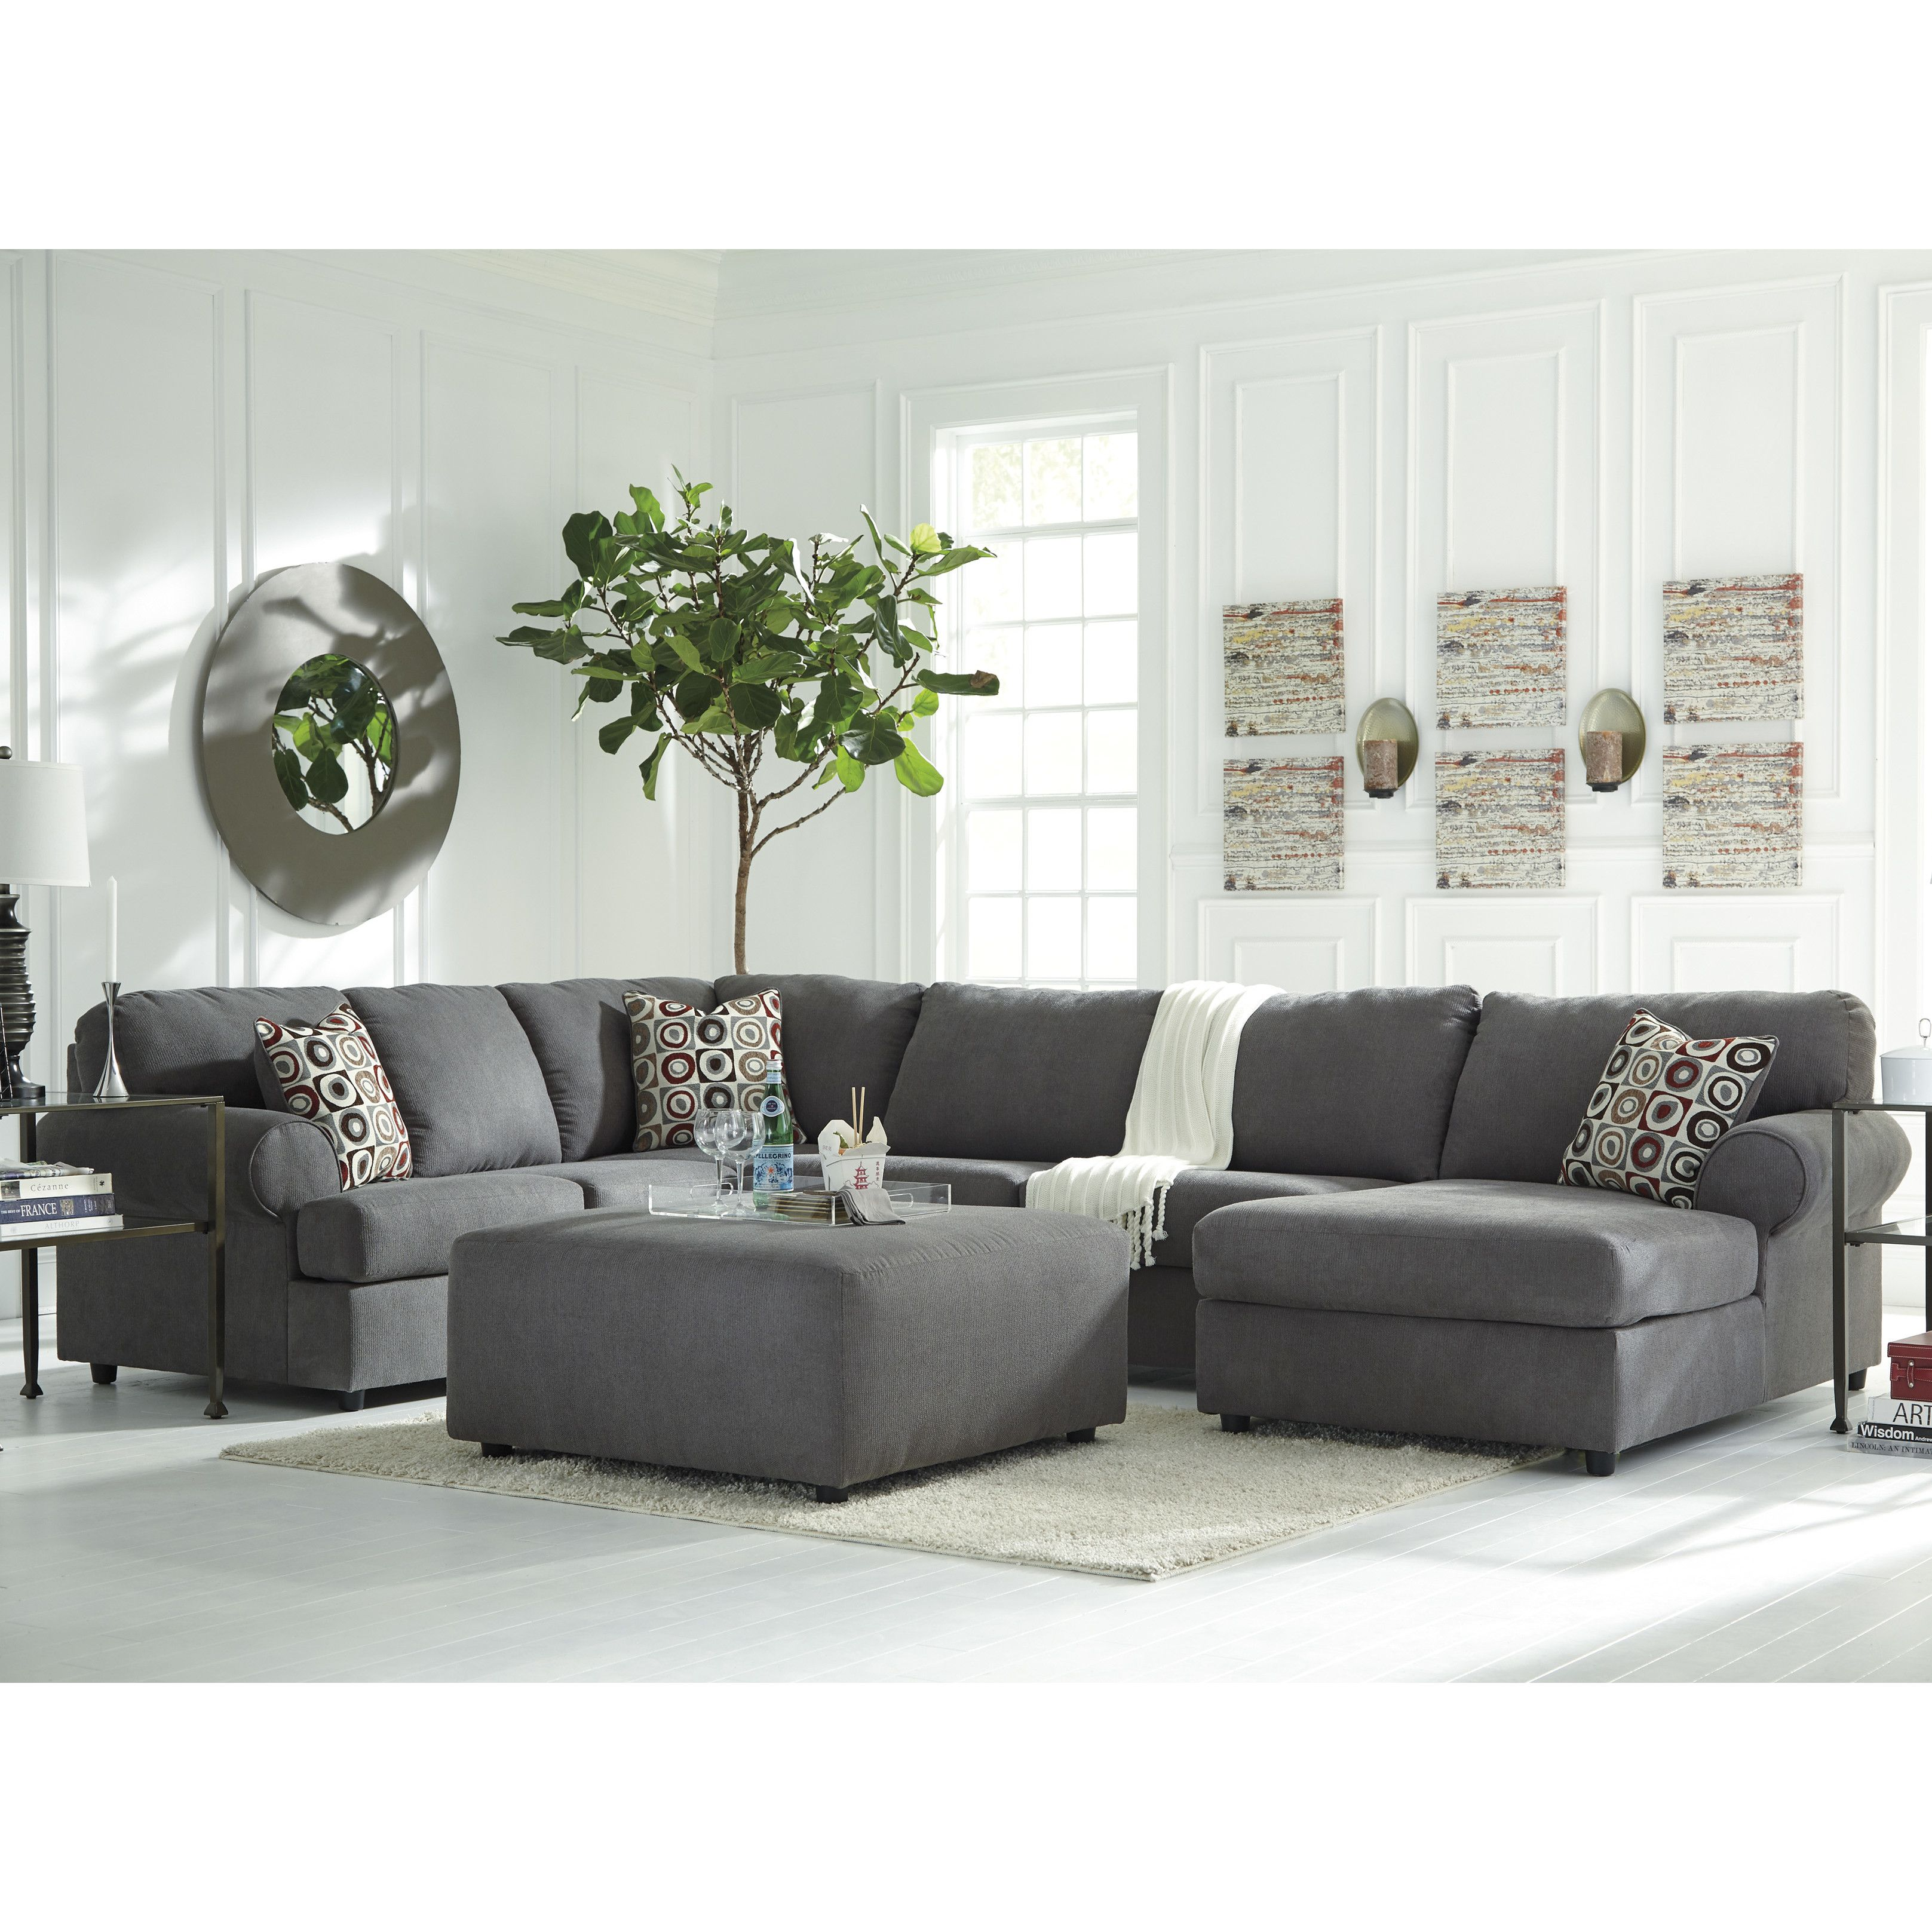 Andover Mills Sellersville Sectional | sectional | Pinterest | Milling